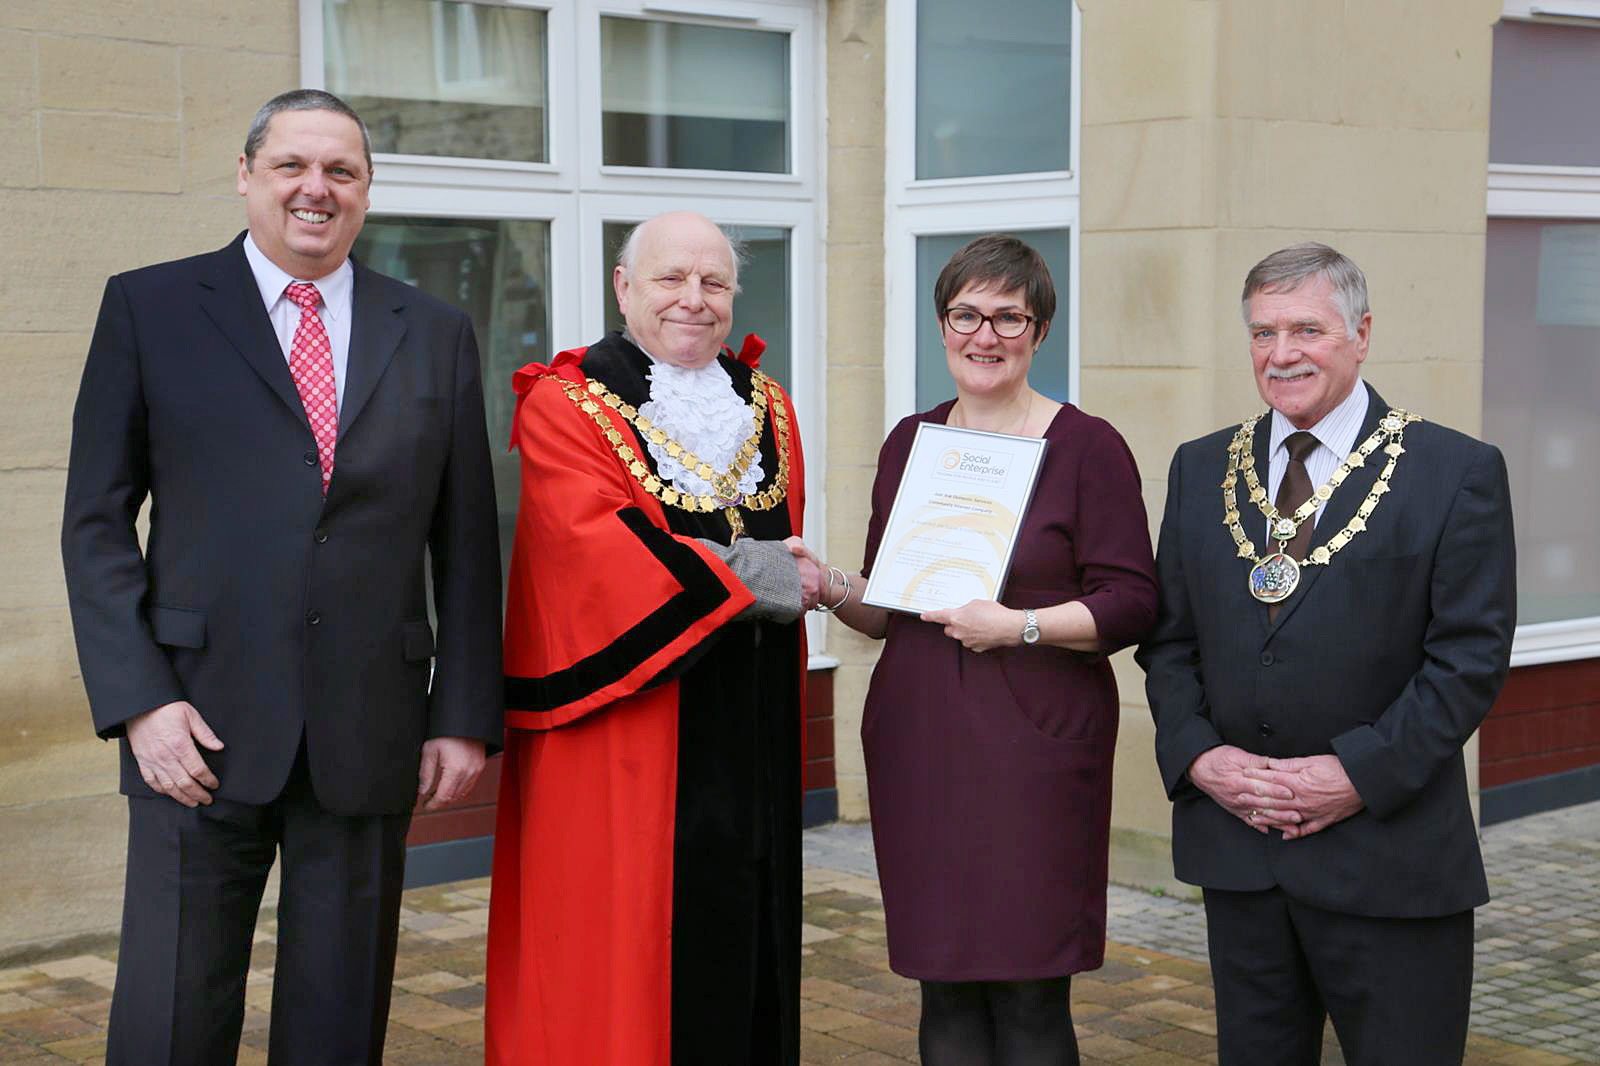 Steve and Sarah Hulbert receive their Social Enterprise Mark from  mayor John Kerwin-Davey and council chief Donny Whaites